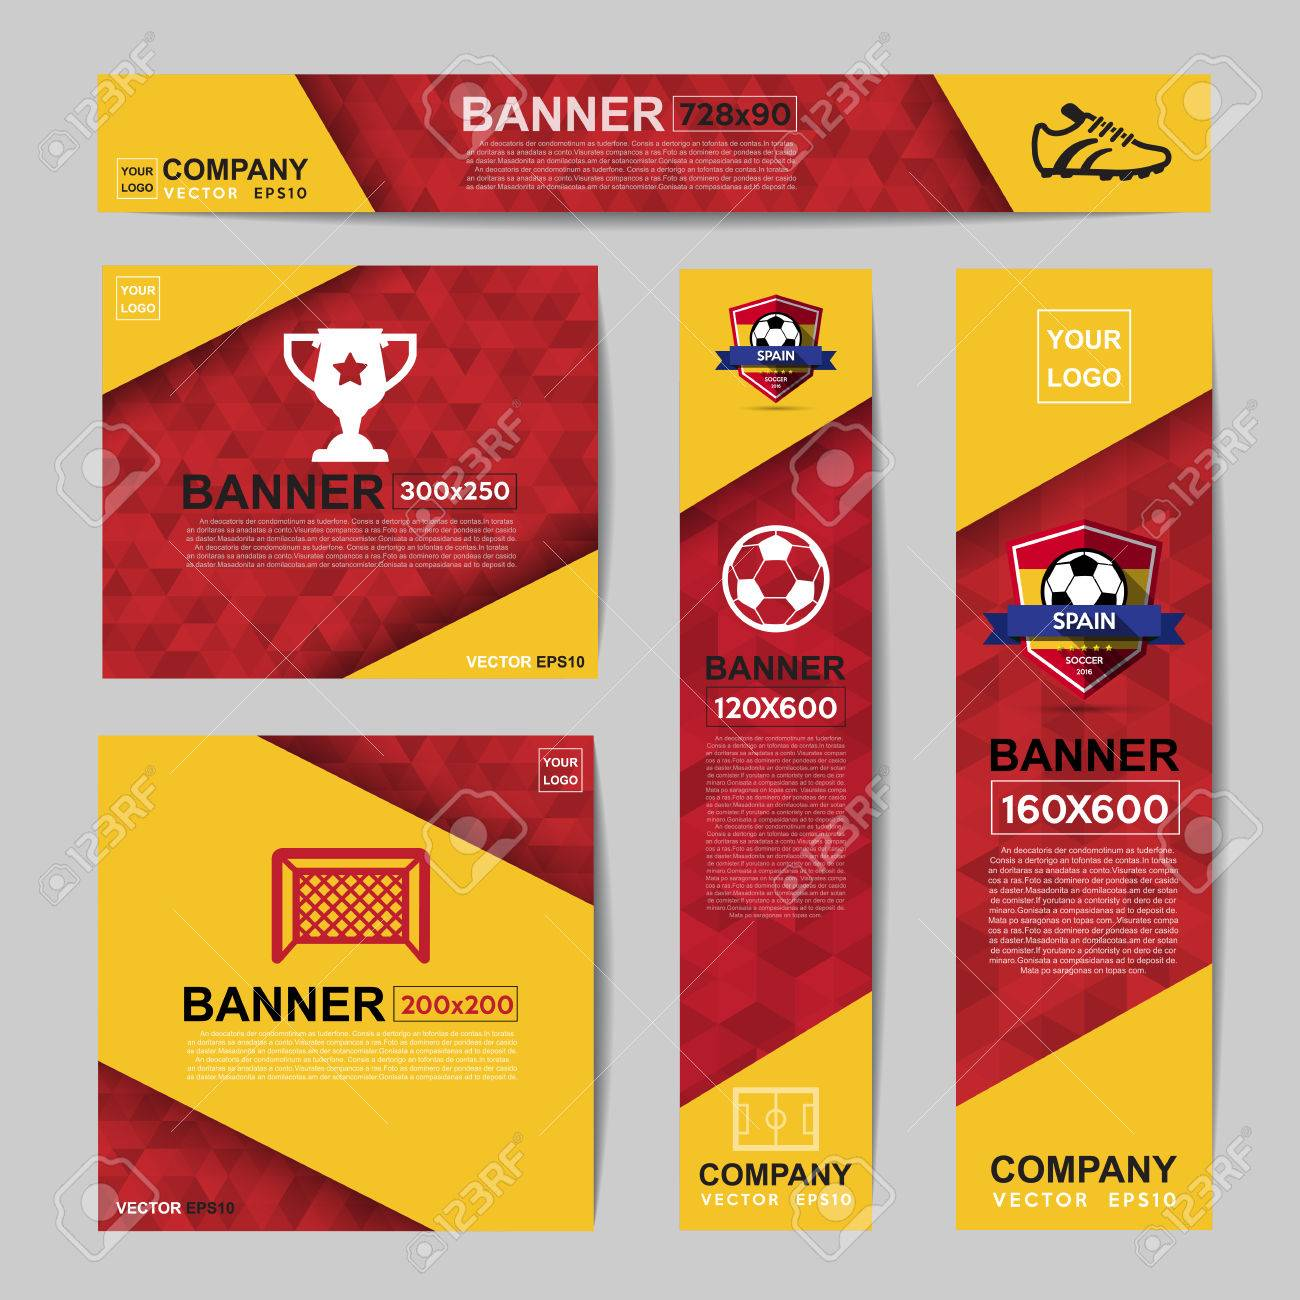 Abstract flag colour banner for Website Ads.Ratio,728x90,300x250,200x200,120x600,160x600 - 58192024